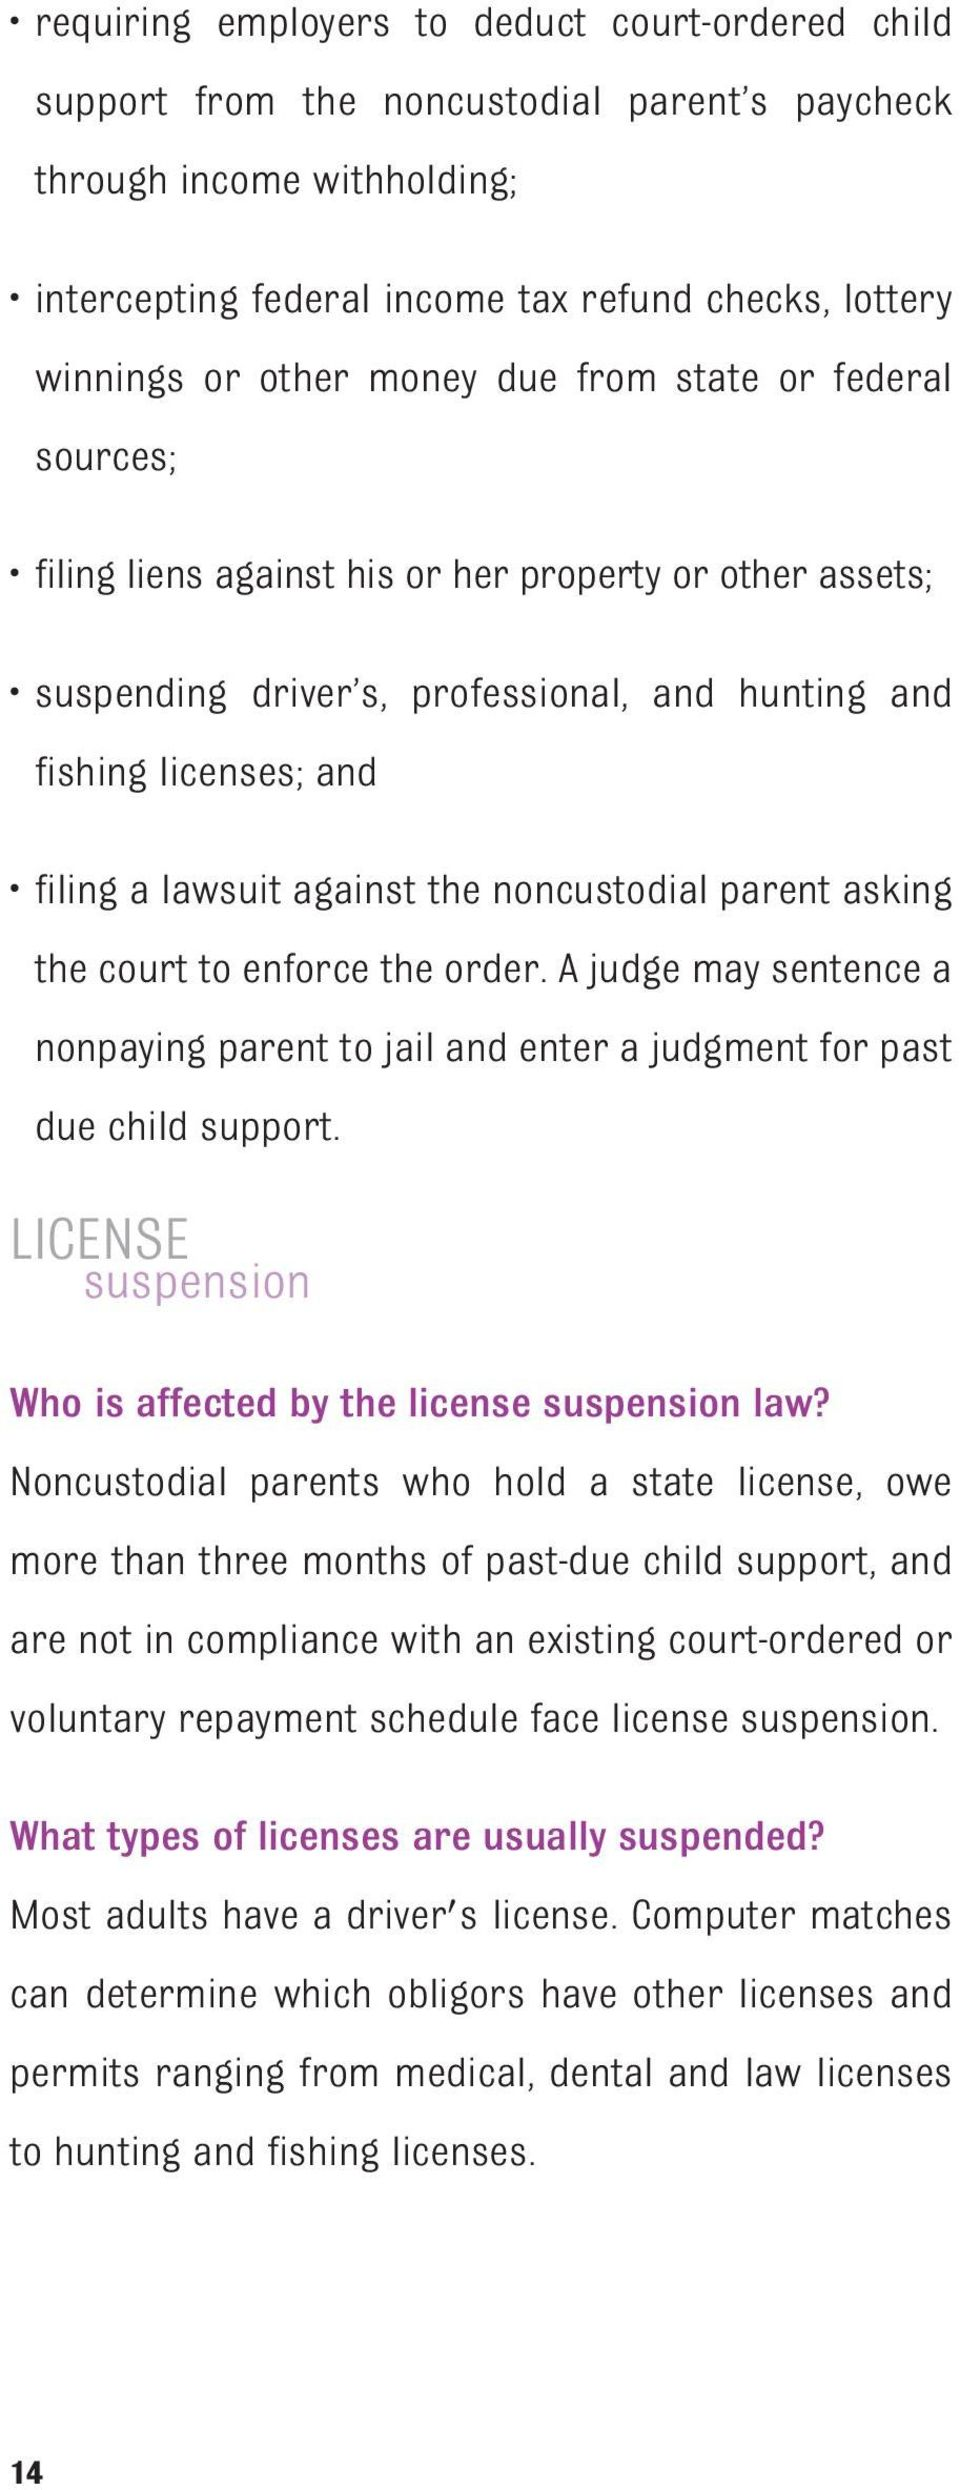 the noncustodial parent asking the court to enforce the order. A judge may sentence a nonpaying parent to jail and enter a judgment for past due child support.